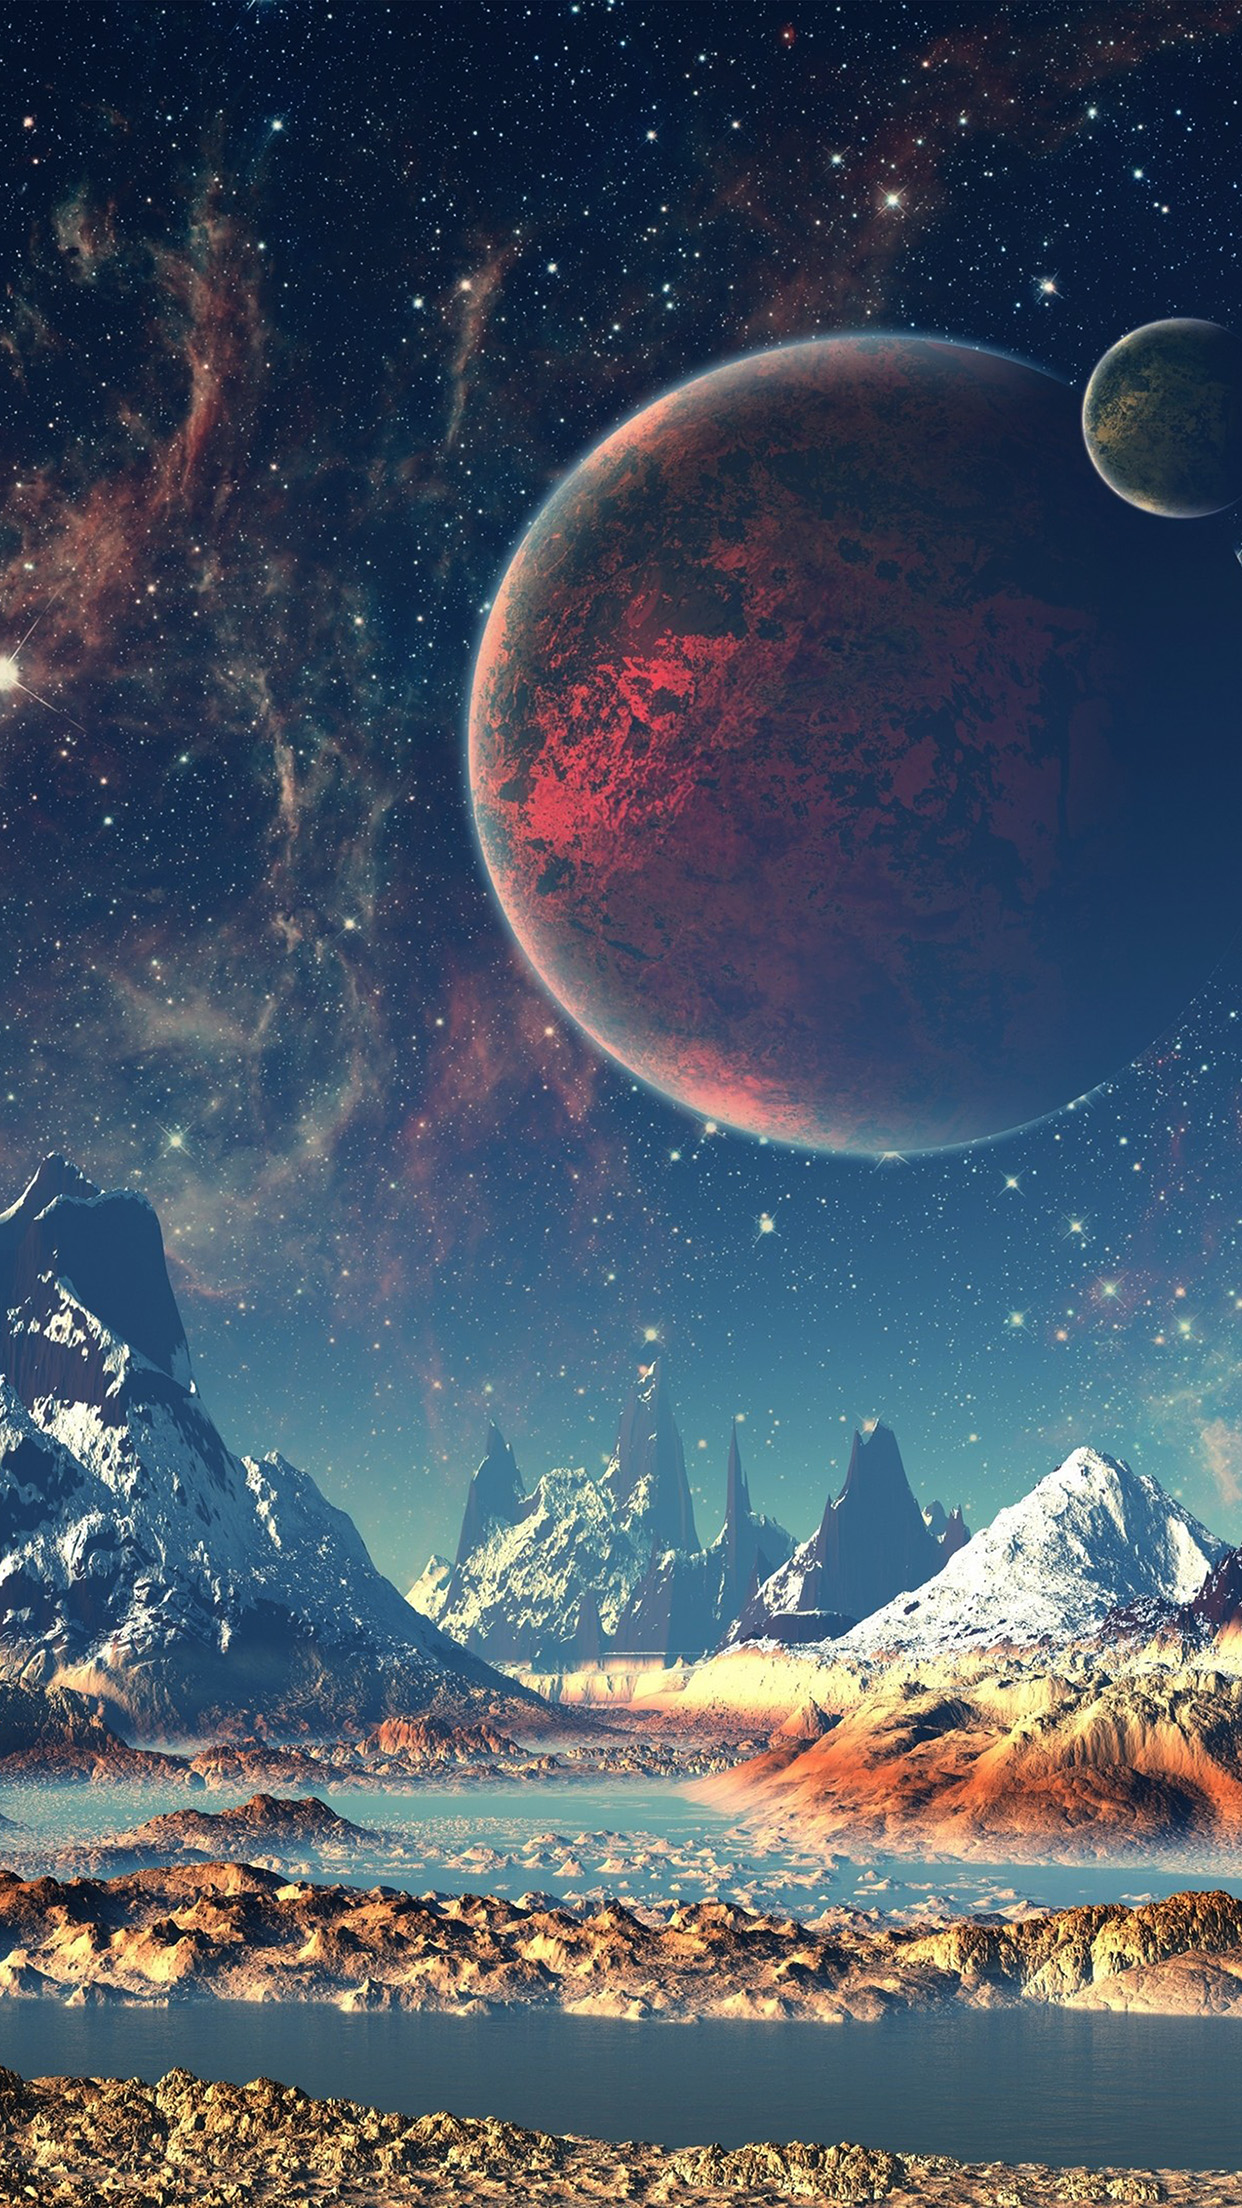 Movable Wallpaper Iphone X Aq10 Dream Space World Mountain Sky Star Illustration